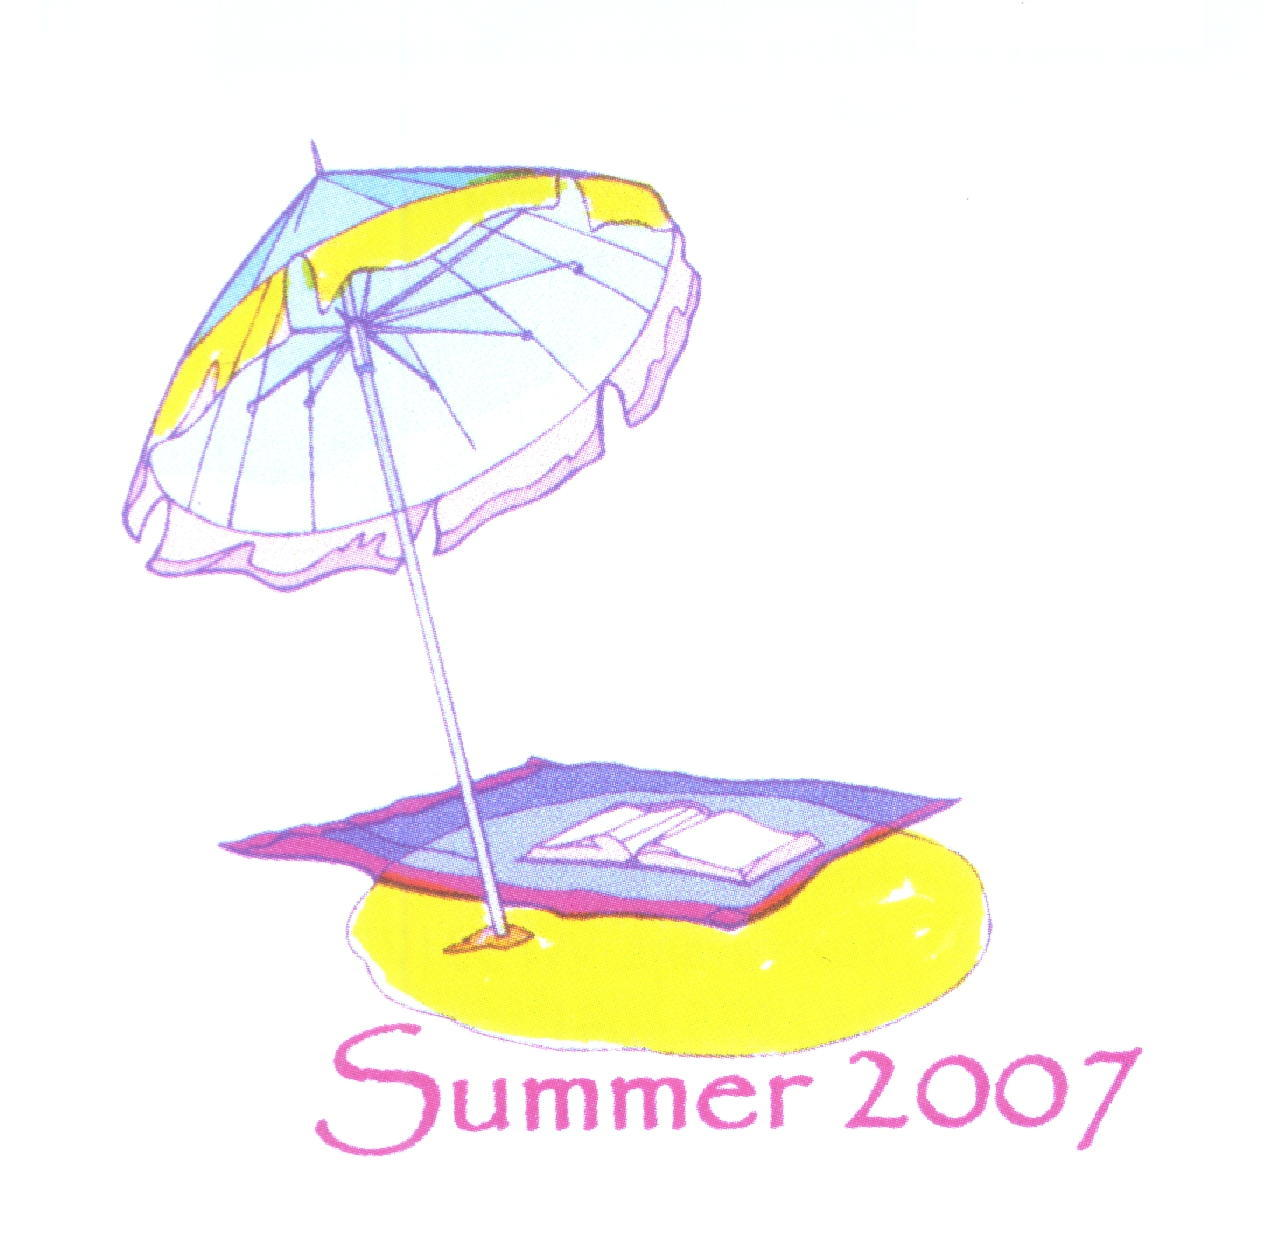 summer2007graphic.jpg (115473 bytes)